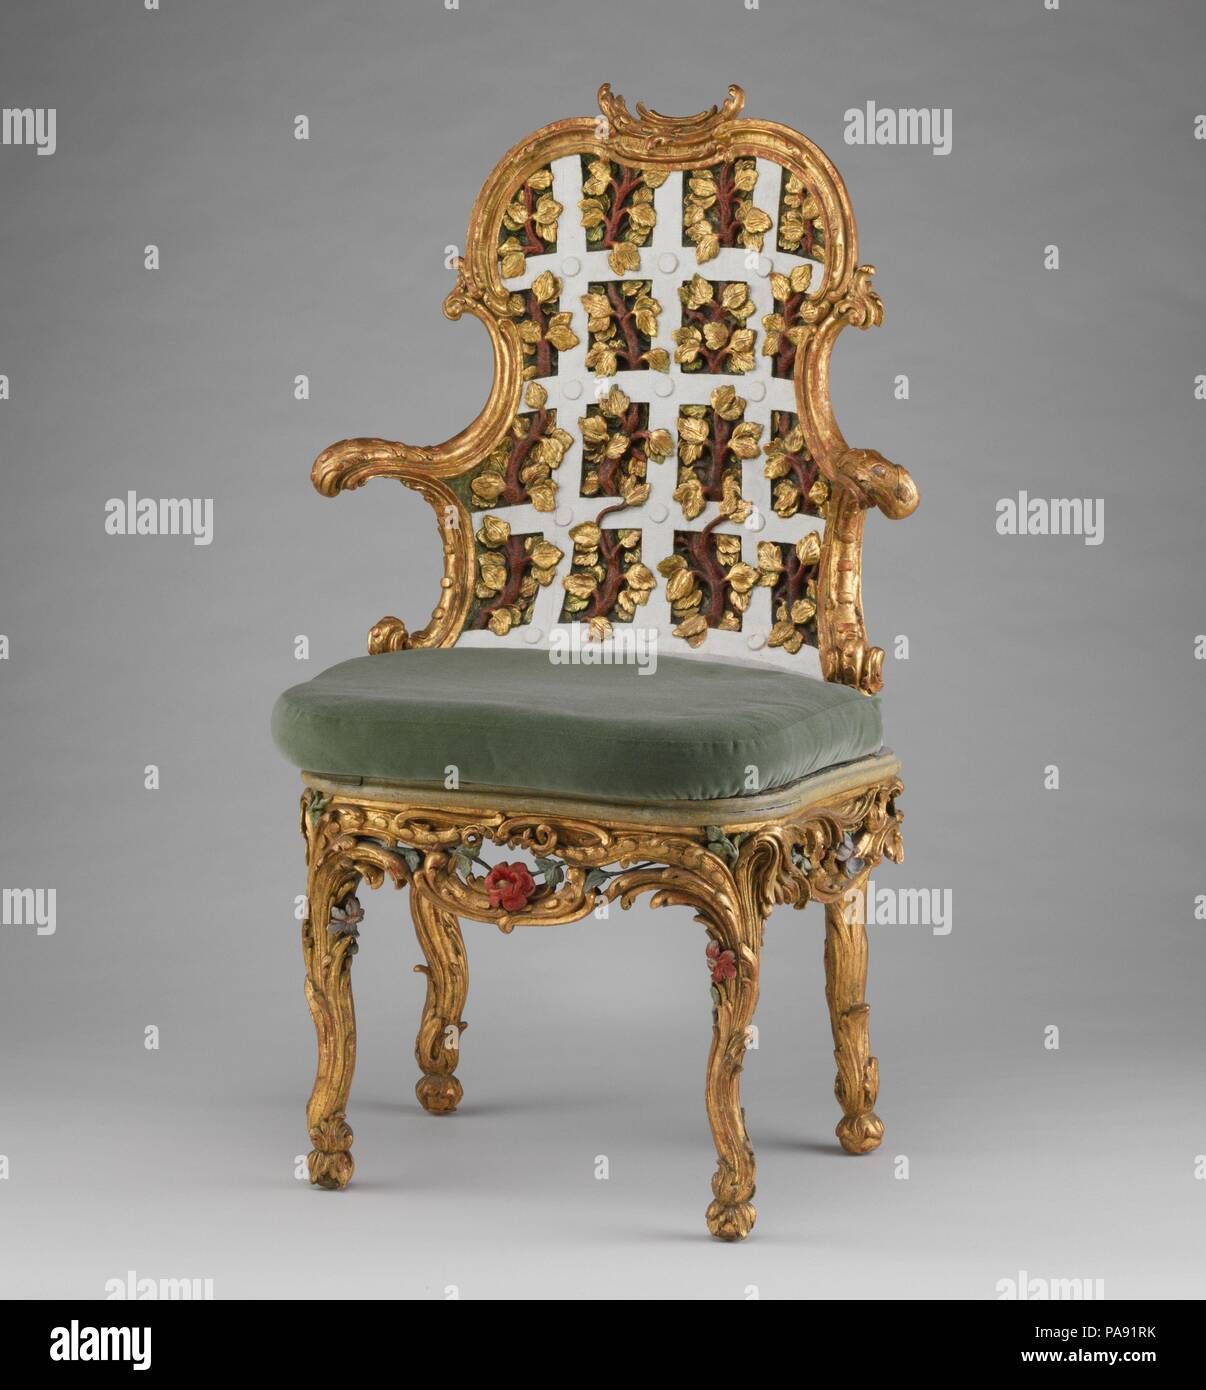 Armchair (one of a pair) (part of a set). Culture: German, Würzburg. Dimensions: 44 x 26 x 21 in. (111.8 x 66 x 53.3cm). Maker: Attributed to Johann Michael Bauer (German, Westheim 1710-1779 Bamberg). Date: ca. 1763-64.  The settees and chairs illustrated here (see 1974.356.114-.121) were made for the Franckenstein Pavilion in the gardens of Seehof Castle near Bamberg, one of the three summer residences in Southern Germany used by Adam Friedrich von Seinsheim, prince bishop of Würzberg and Bamberg. A true garden enthusiast, it was under von Seinsheim that the gardens of Seehof were embellished - Stock Image